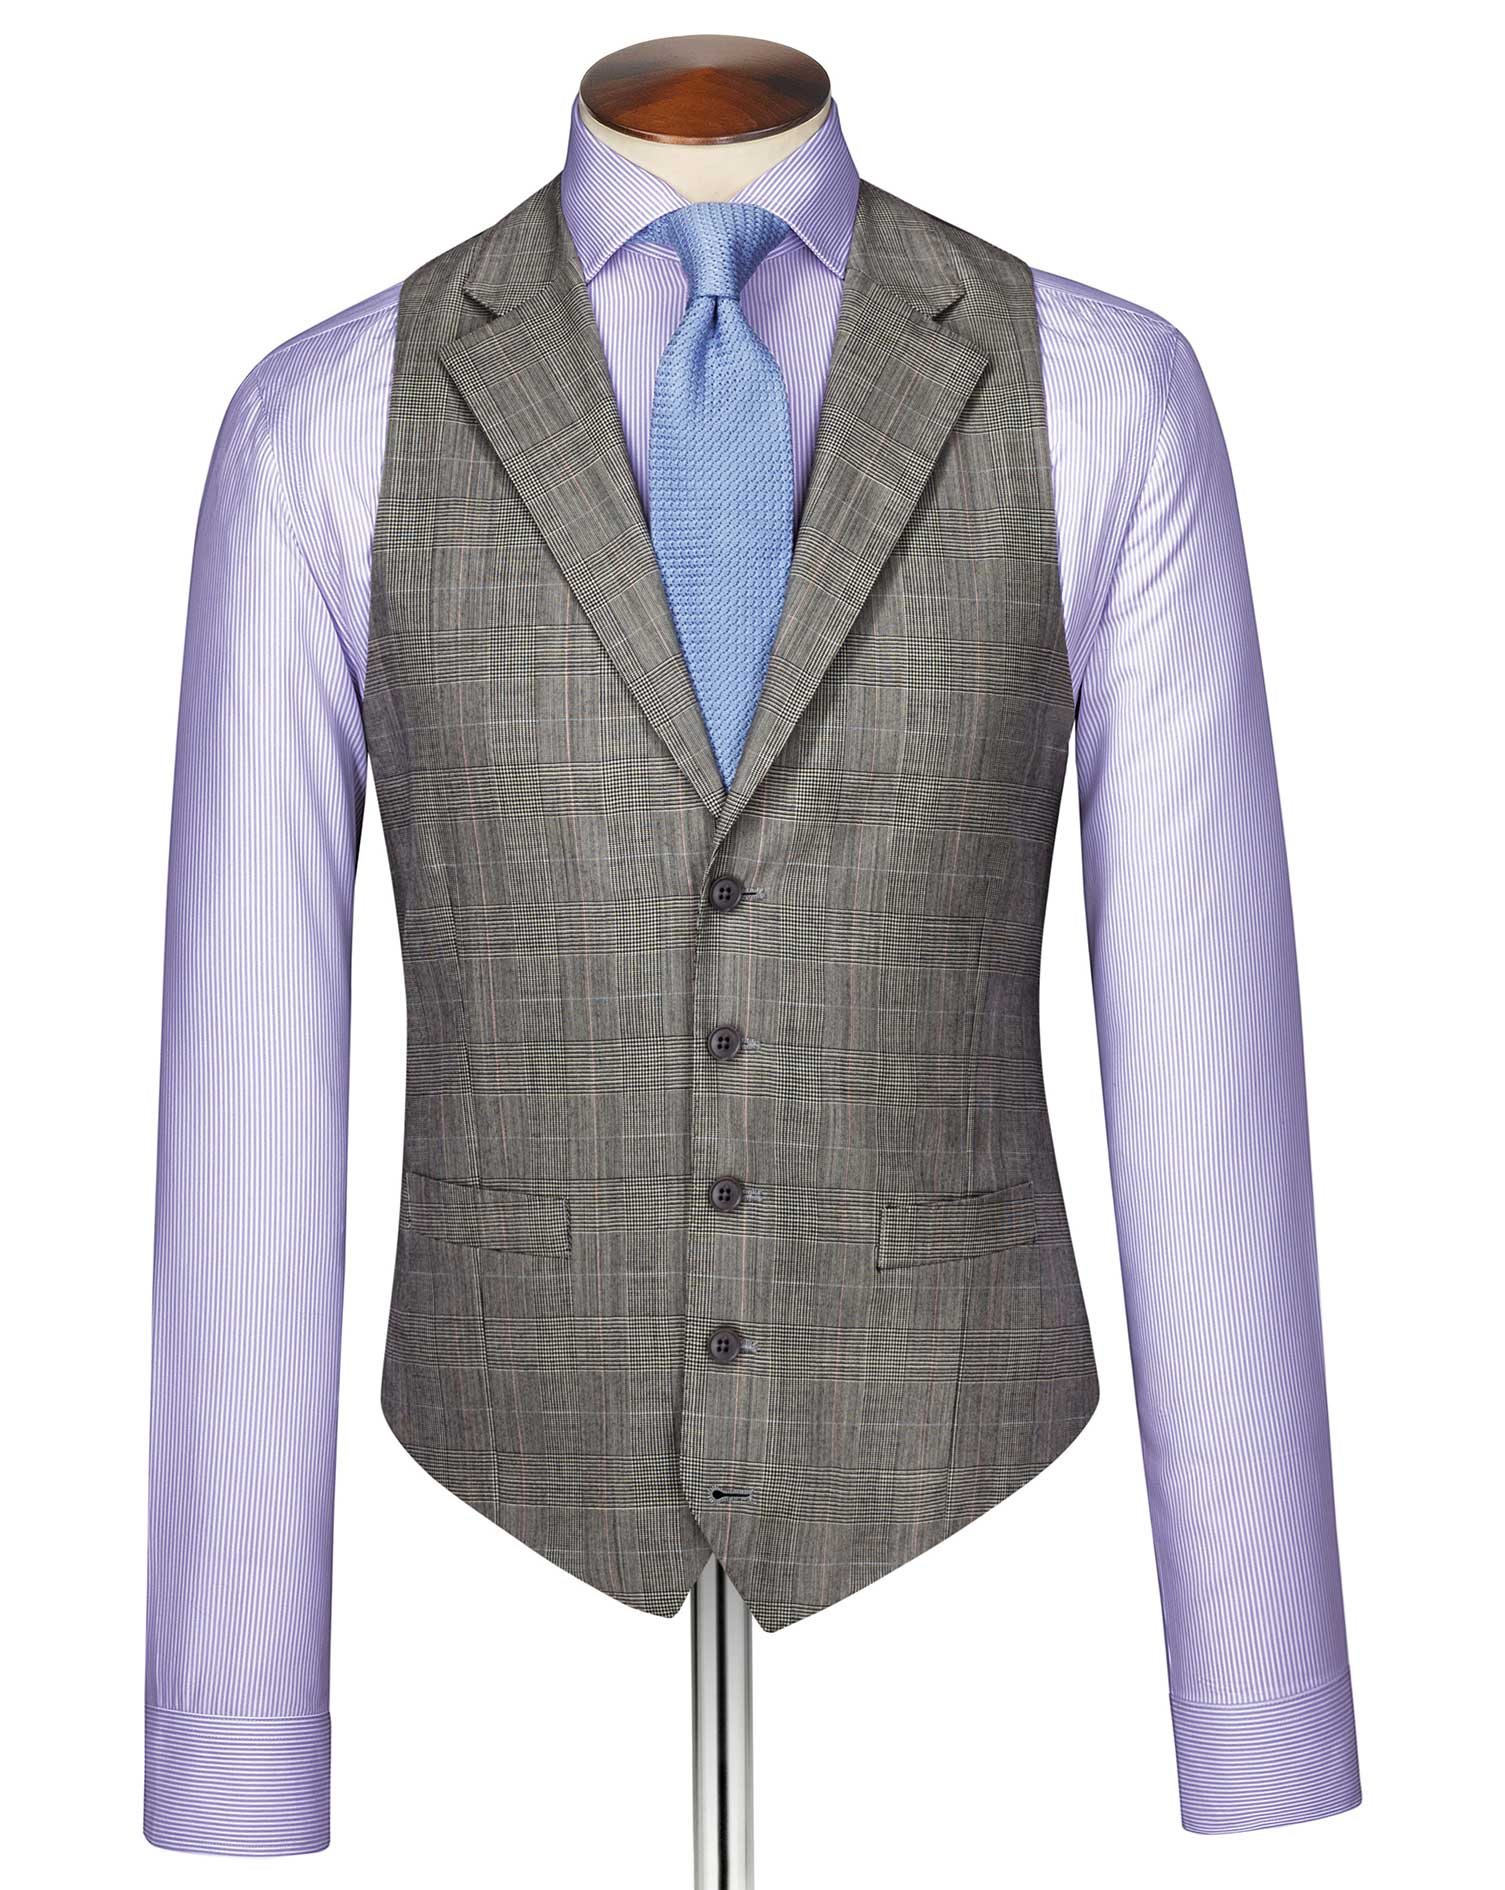 Grey Prince of Wales check Panama business suit waistcoat